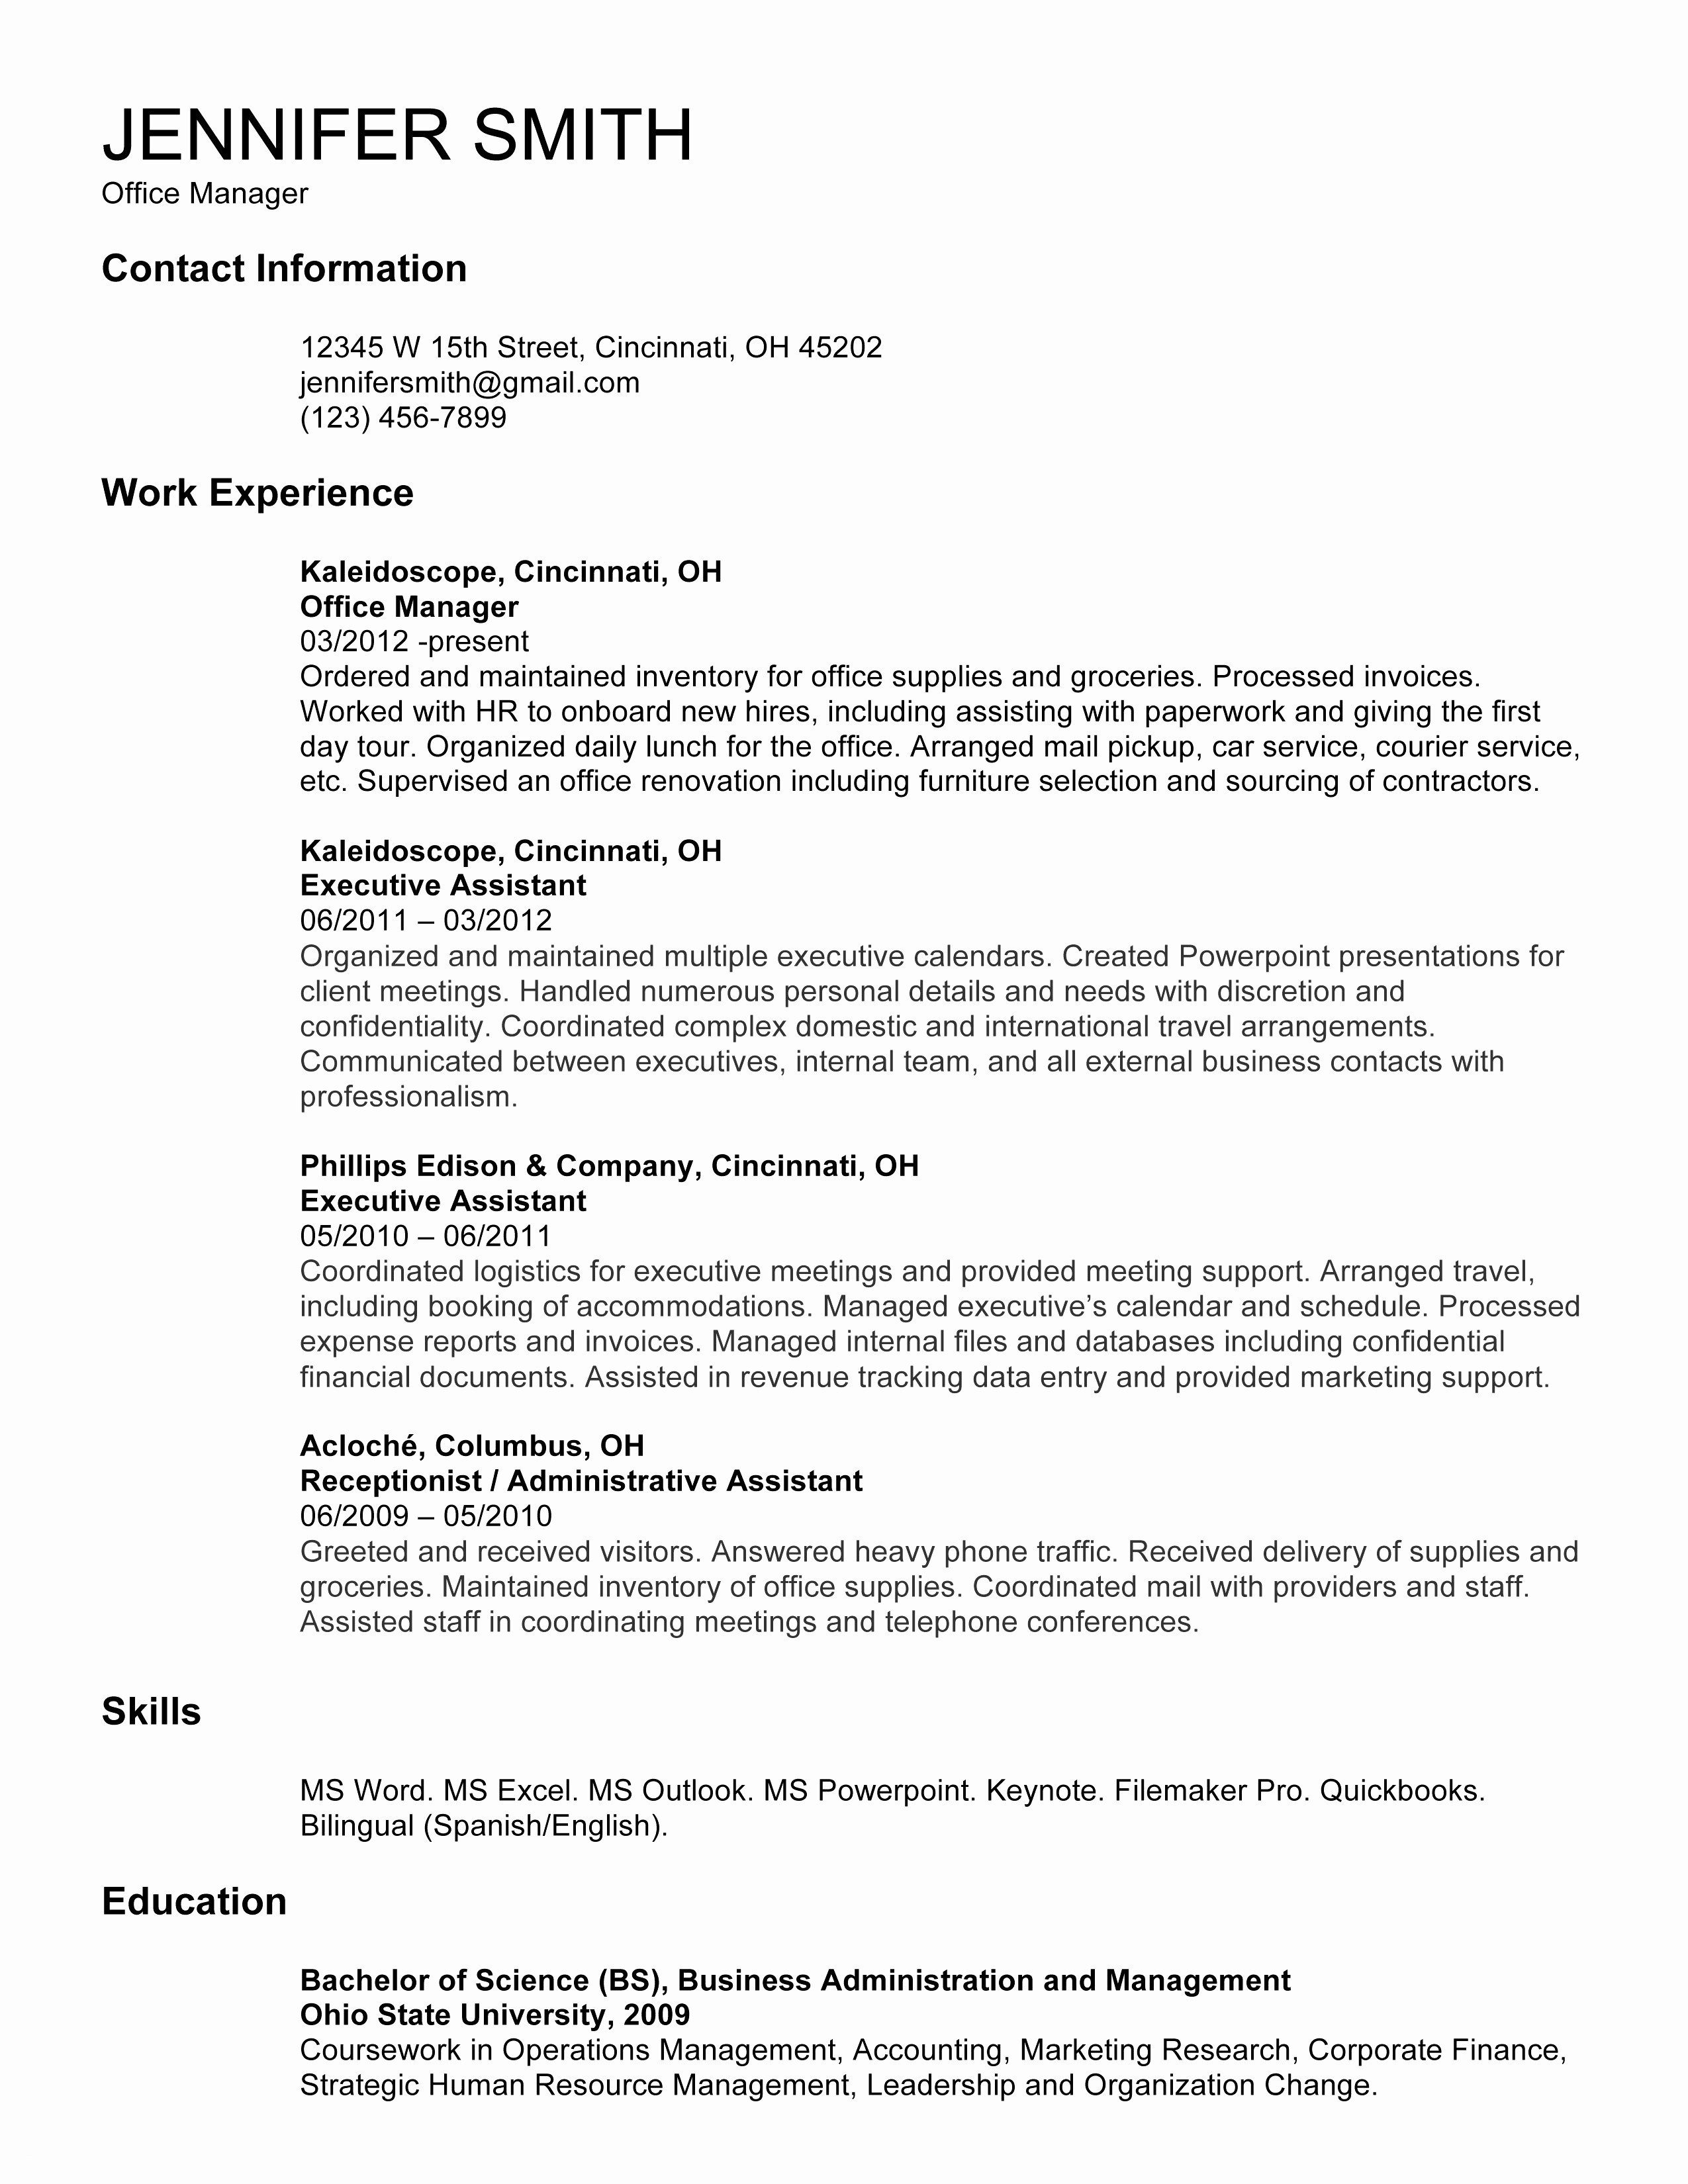 Resume Examples for Warehouse Worker - 25 New Warehouse Worker Resume